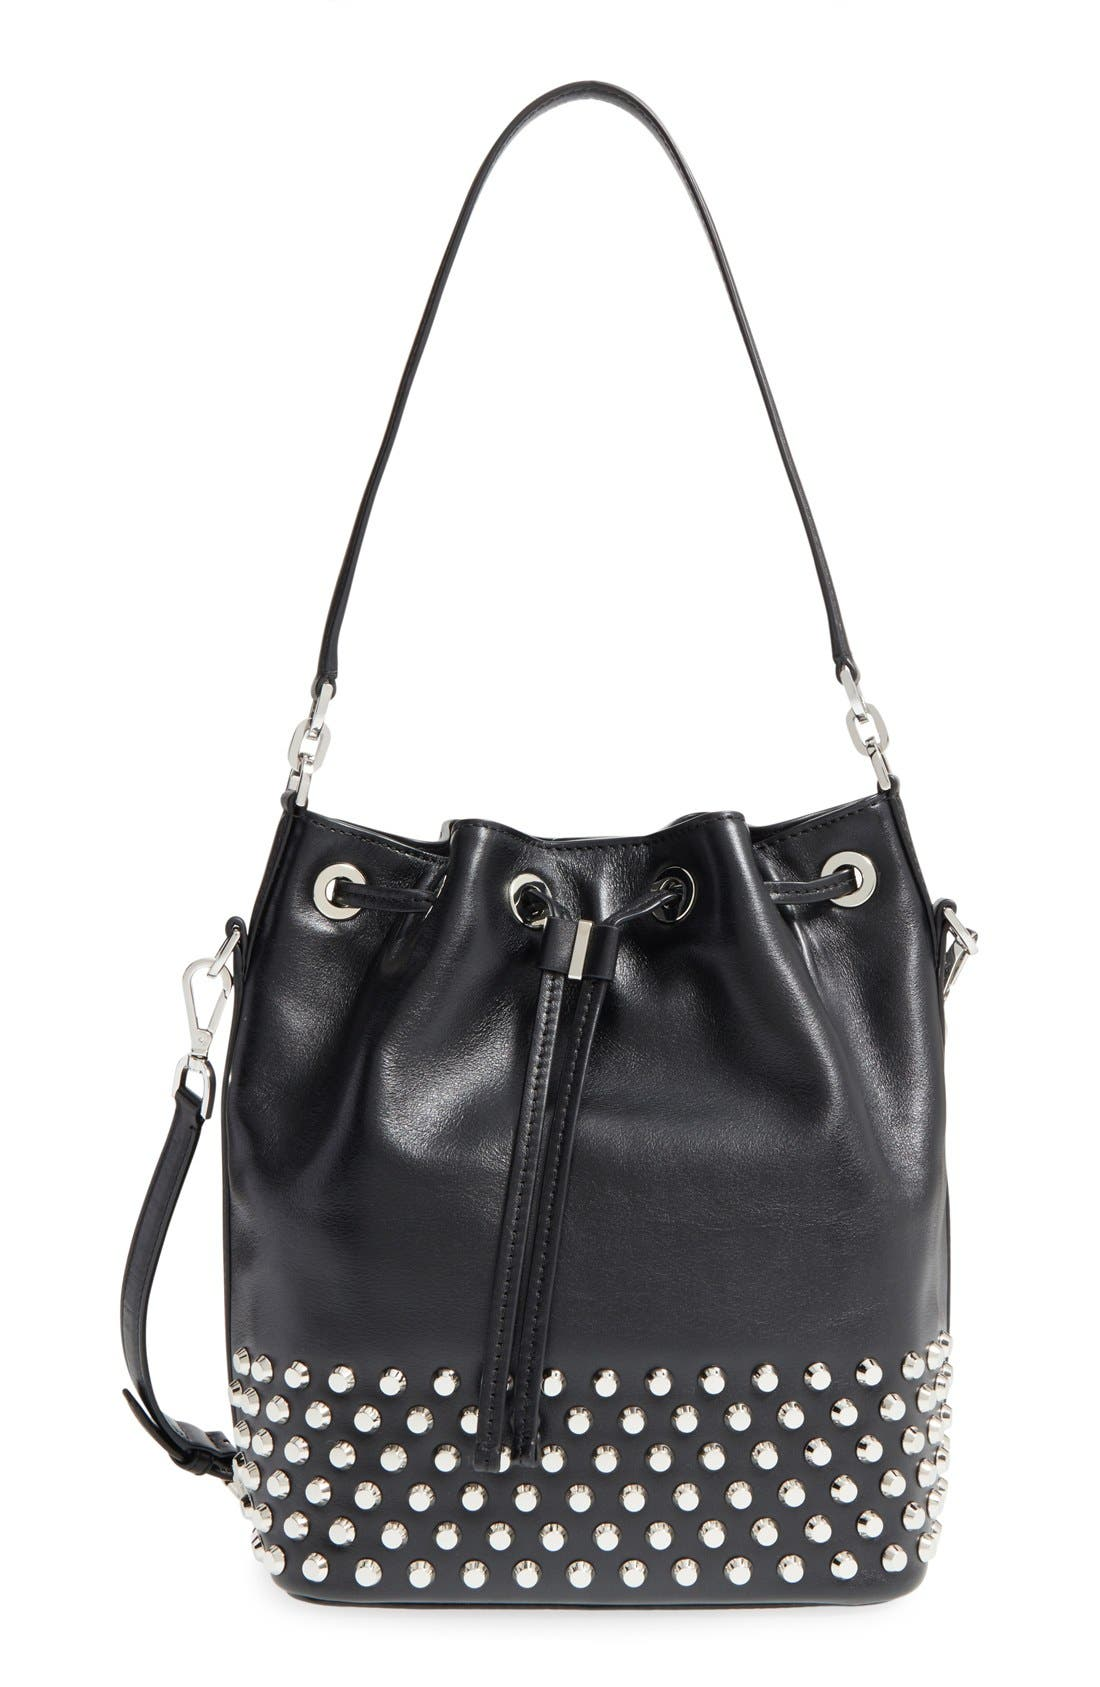 Main Image - MICHAEL Michael Kors 'Dottie' Studded Leather Bucket Bag